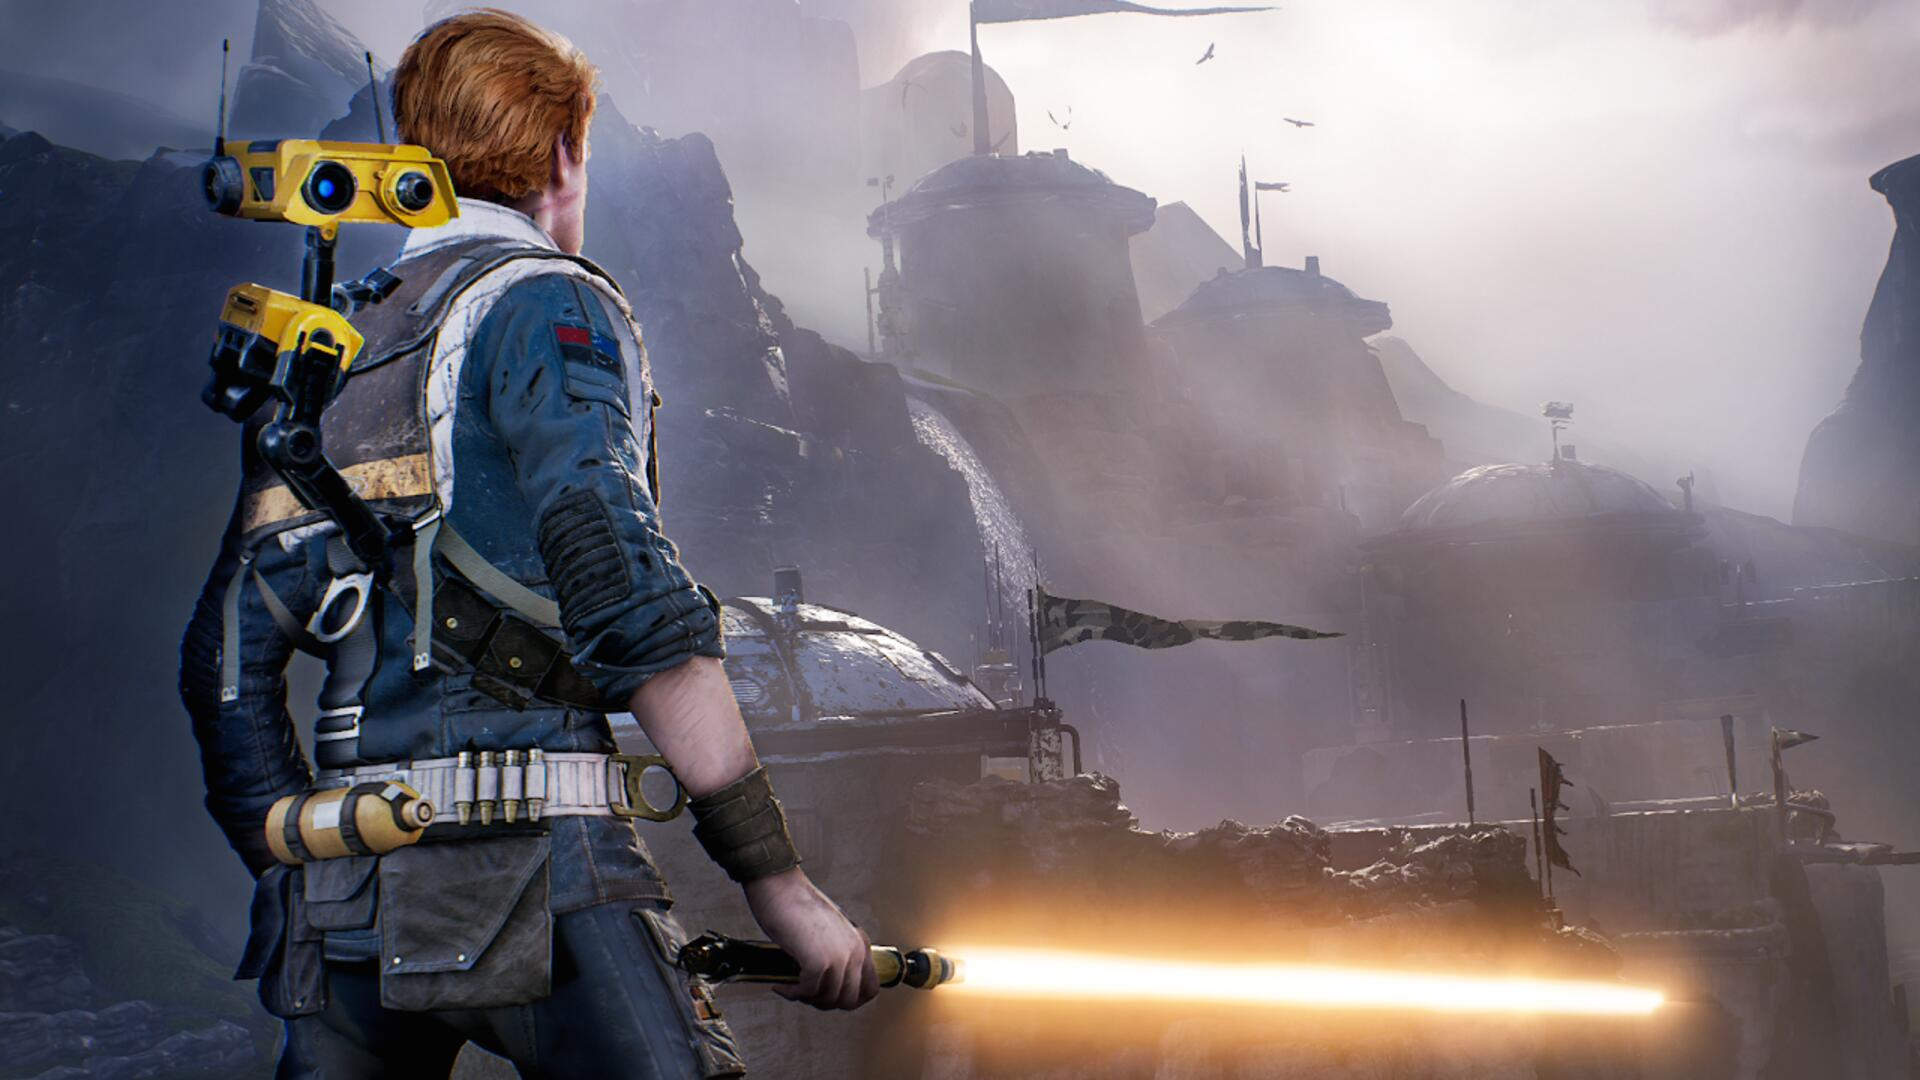 Everyone Can Have An Orange Lightsaber In Star Wars Jedi Fallen Order Now As A Treat Usgamer